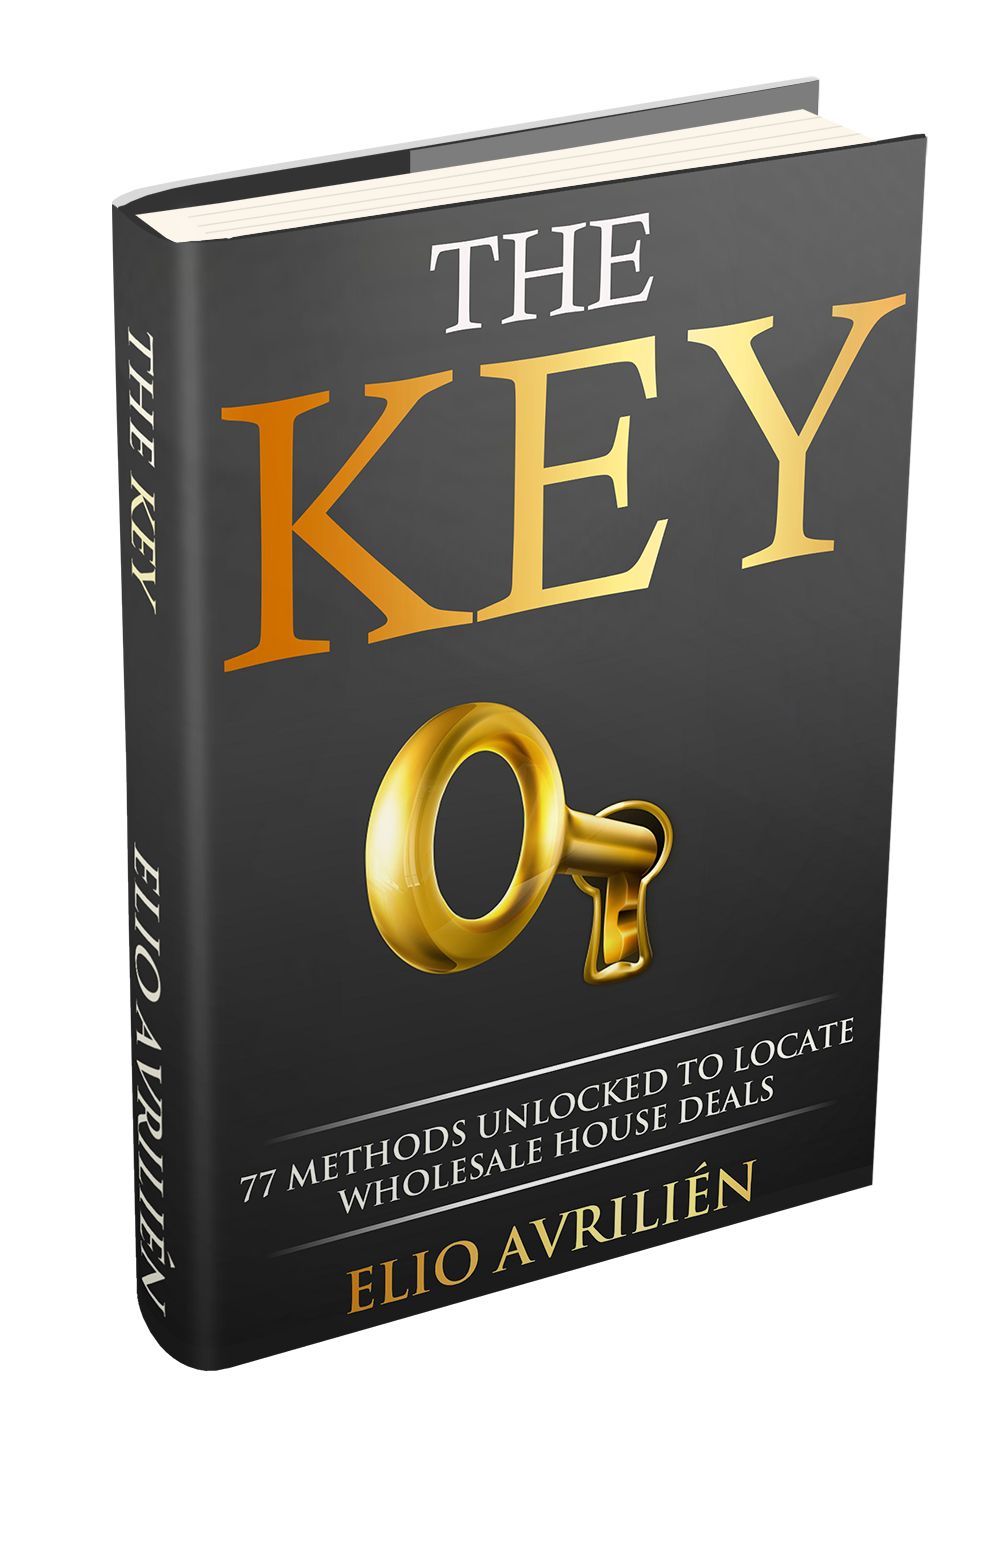 THE KEY.. (77 METHODS UNLOCKED TO LOCATE WHOLESALE HOUSE DEALS) Download The Free E-Book Now